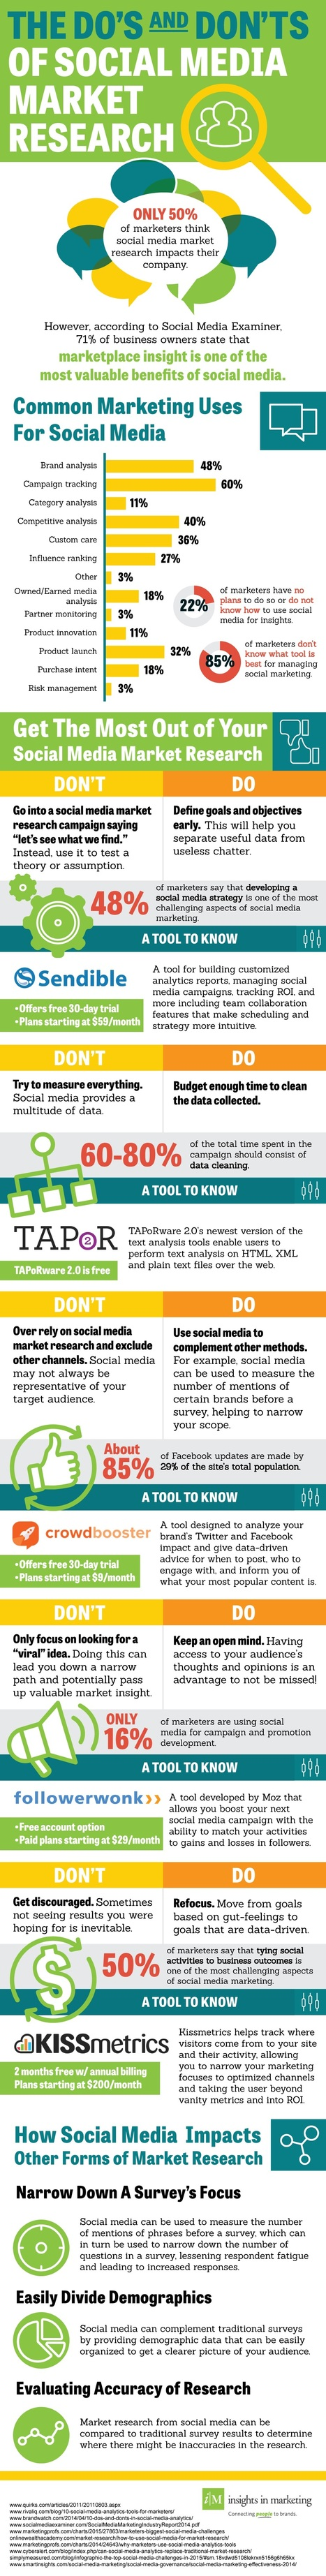 5 Ways to Use Social Media for Market Research #Infographic | Social Media and other stuff | Scoop.it